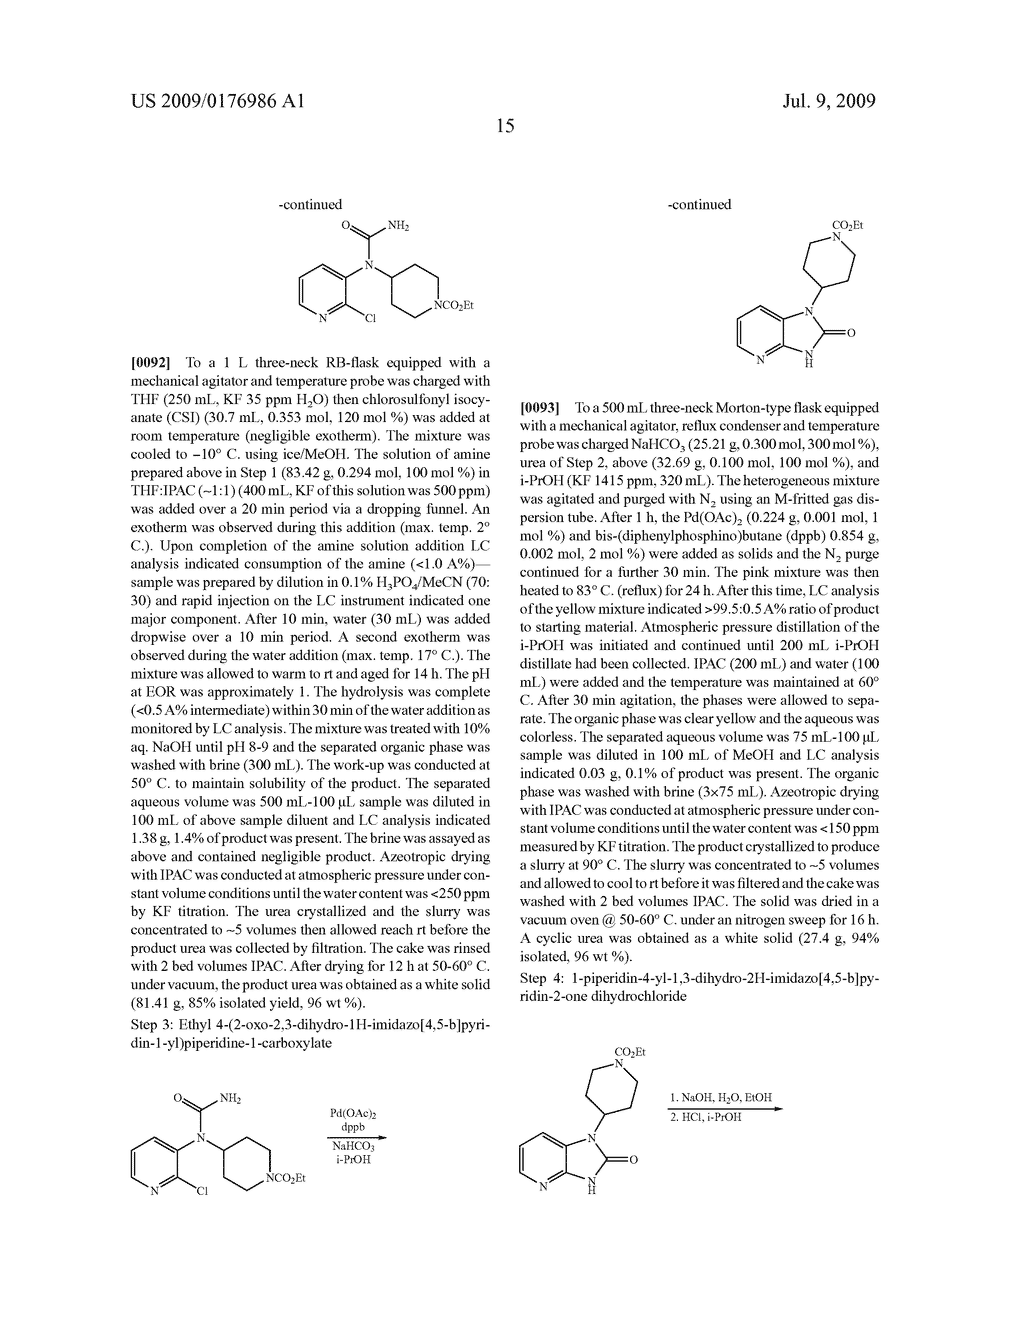 Process for the Preparation of Pyridine Heterocycle Cgrp Antagonist Intermediate - diagram, schematic, and image 16